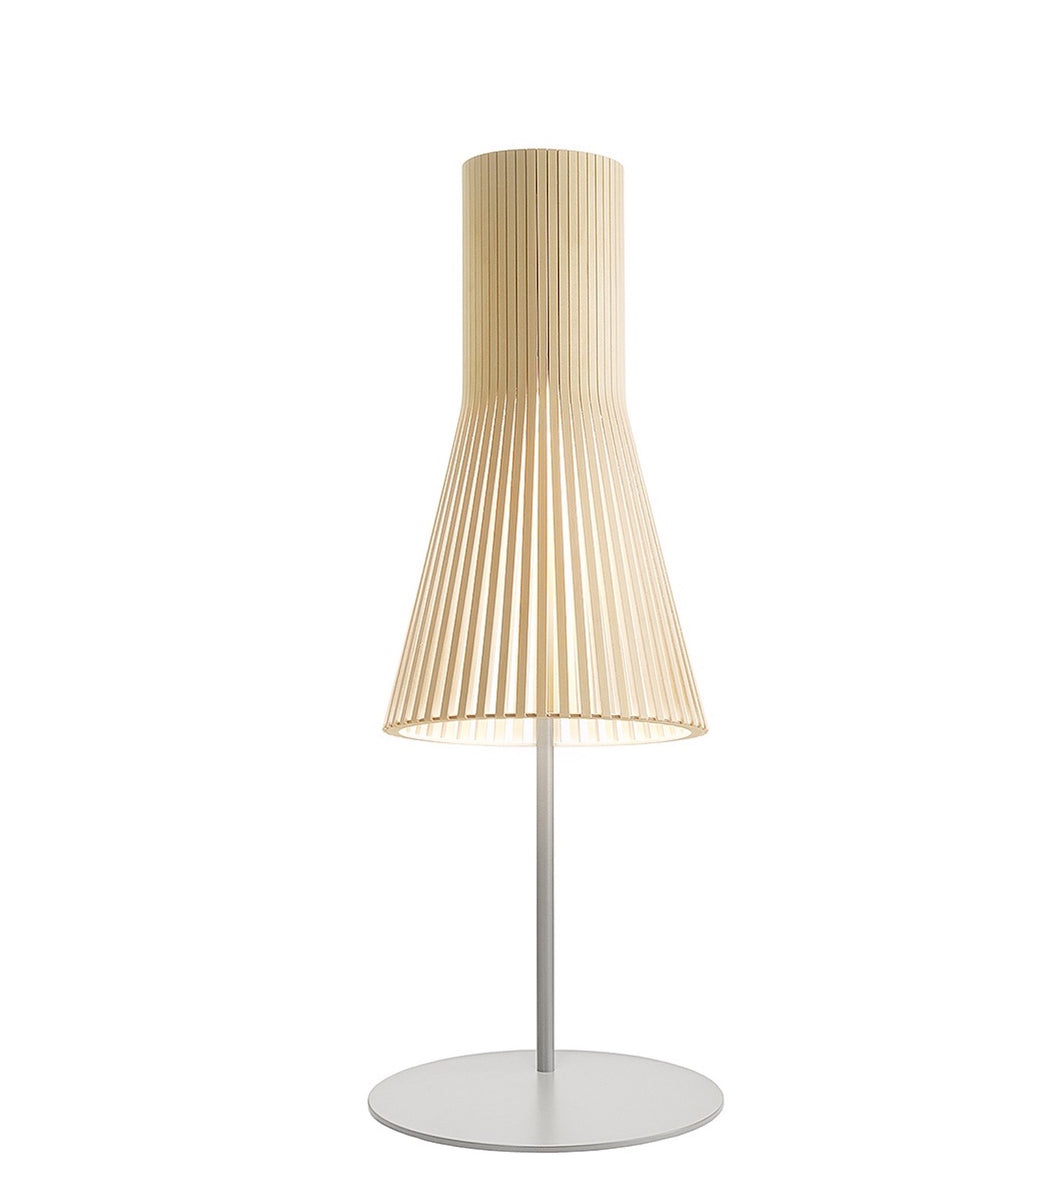 Secto Table light wooden shade 4220 Natural Birch 2